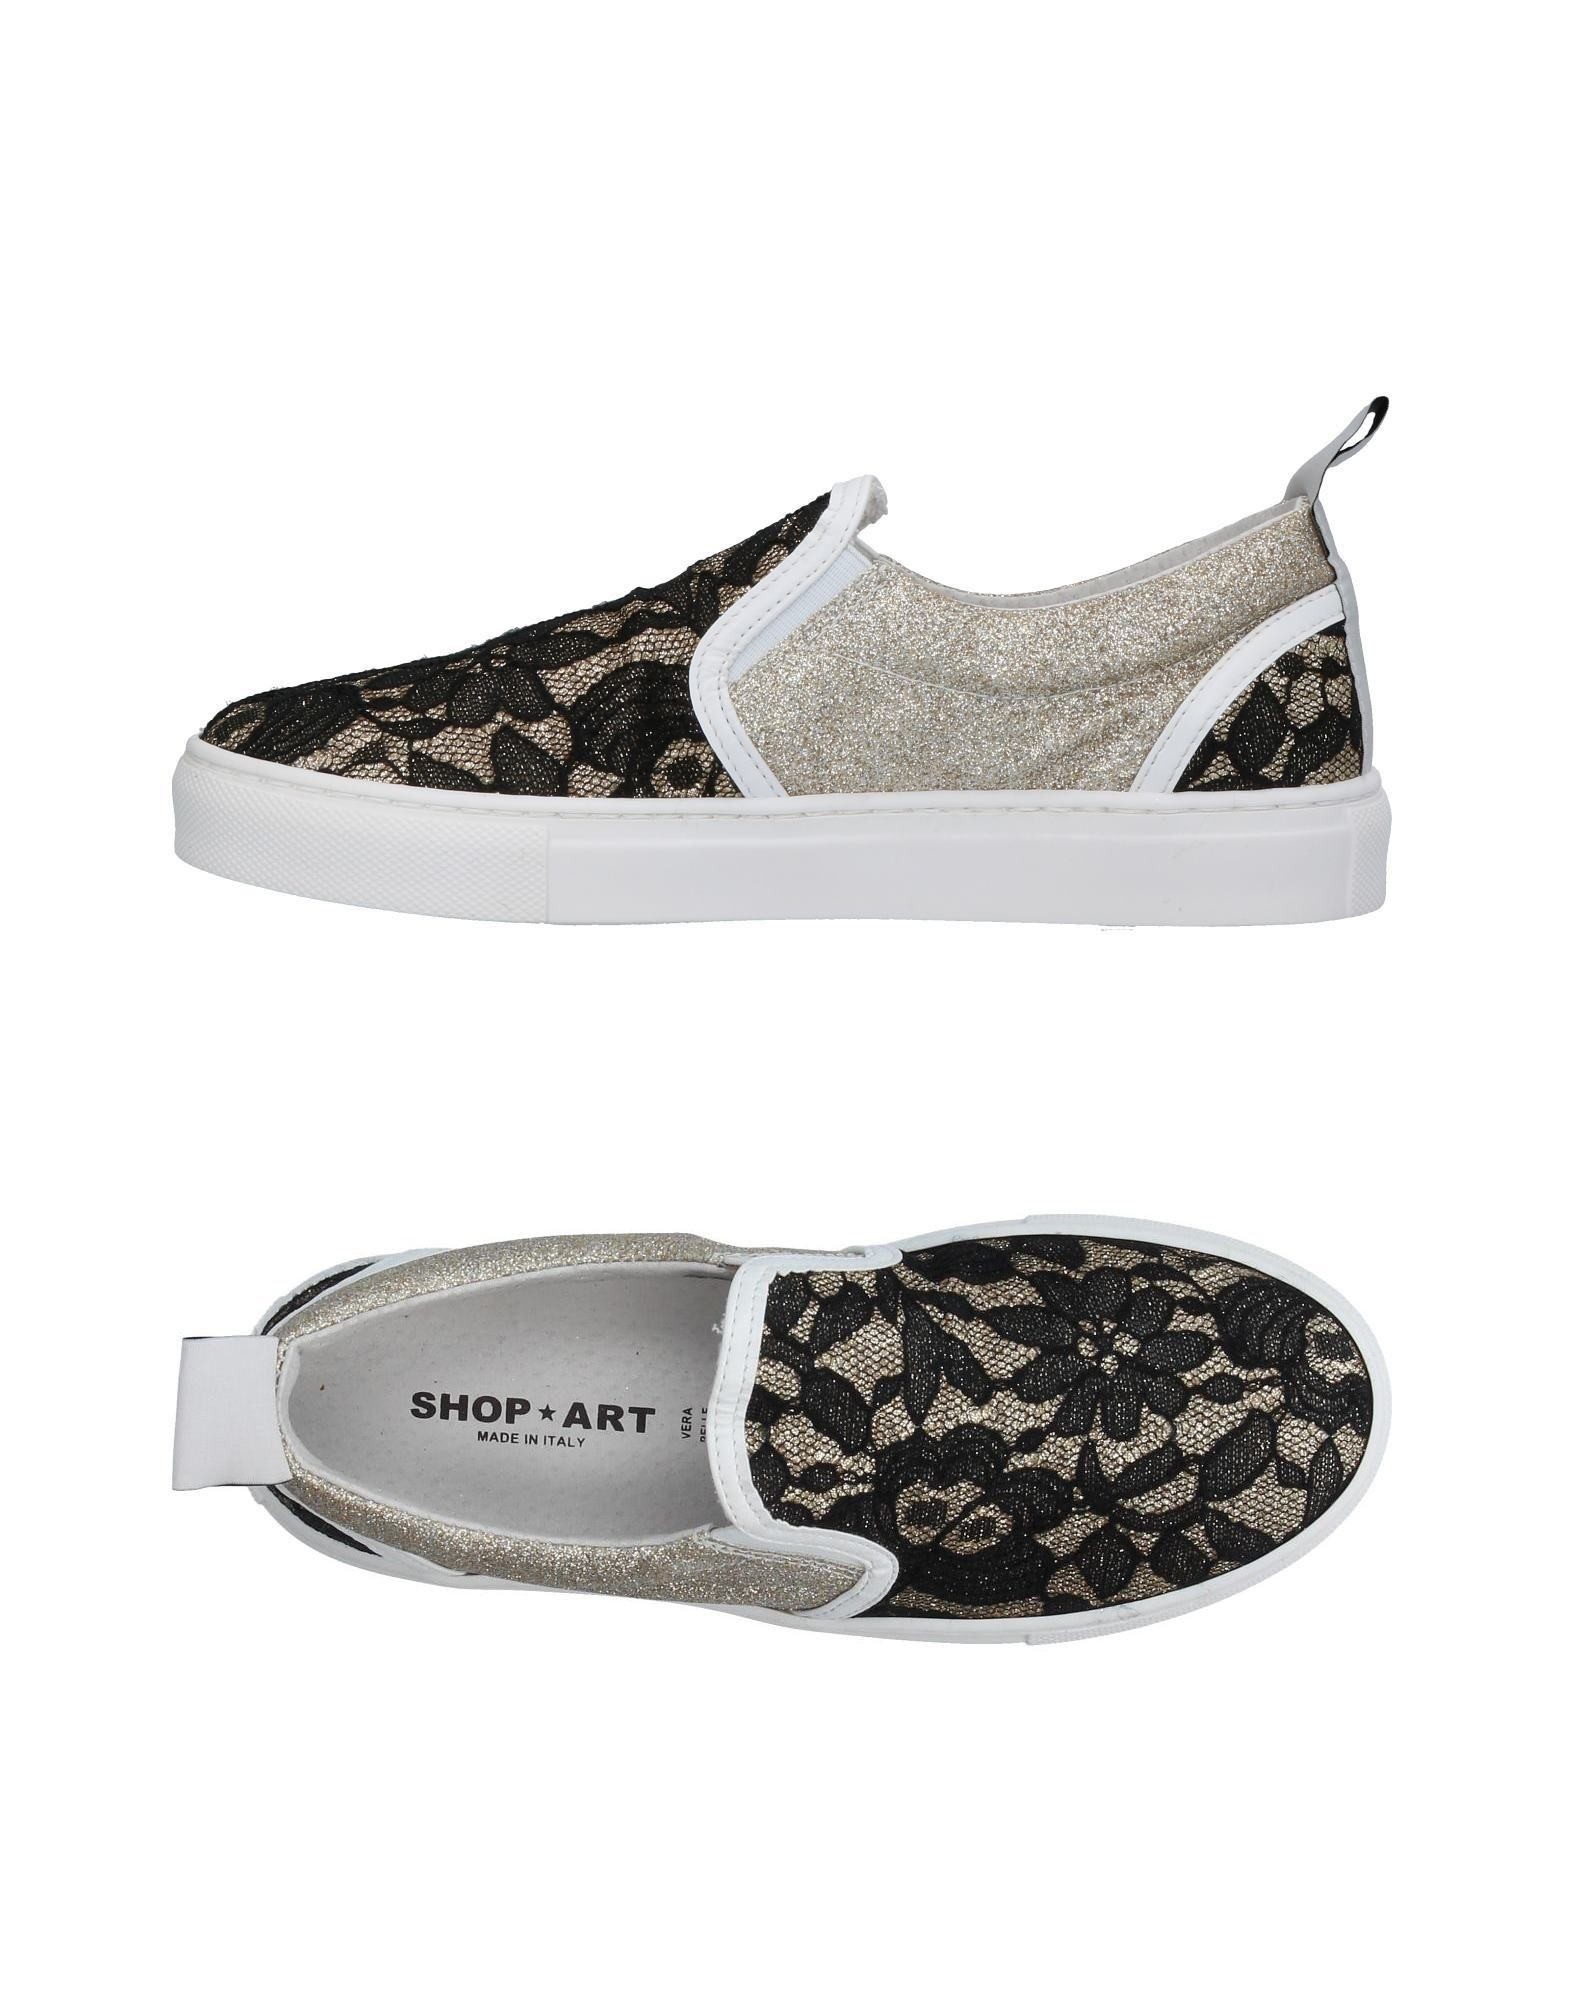 Sneakers - Shop ★ Art Donna - Sneakers 11376782UE 5a2318